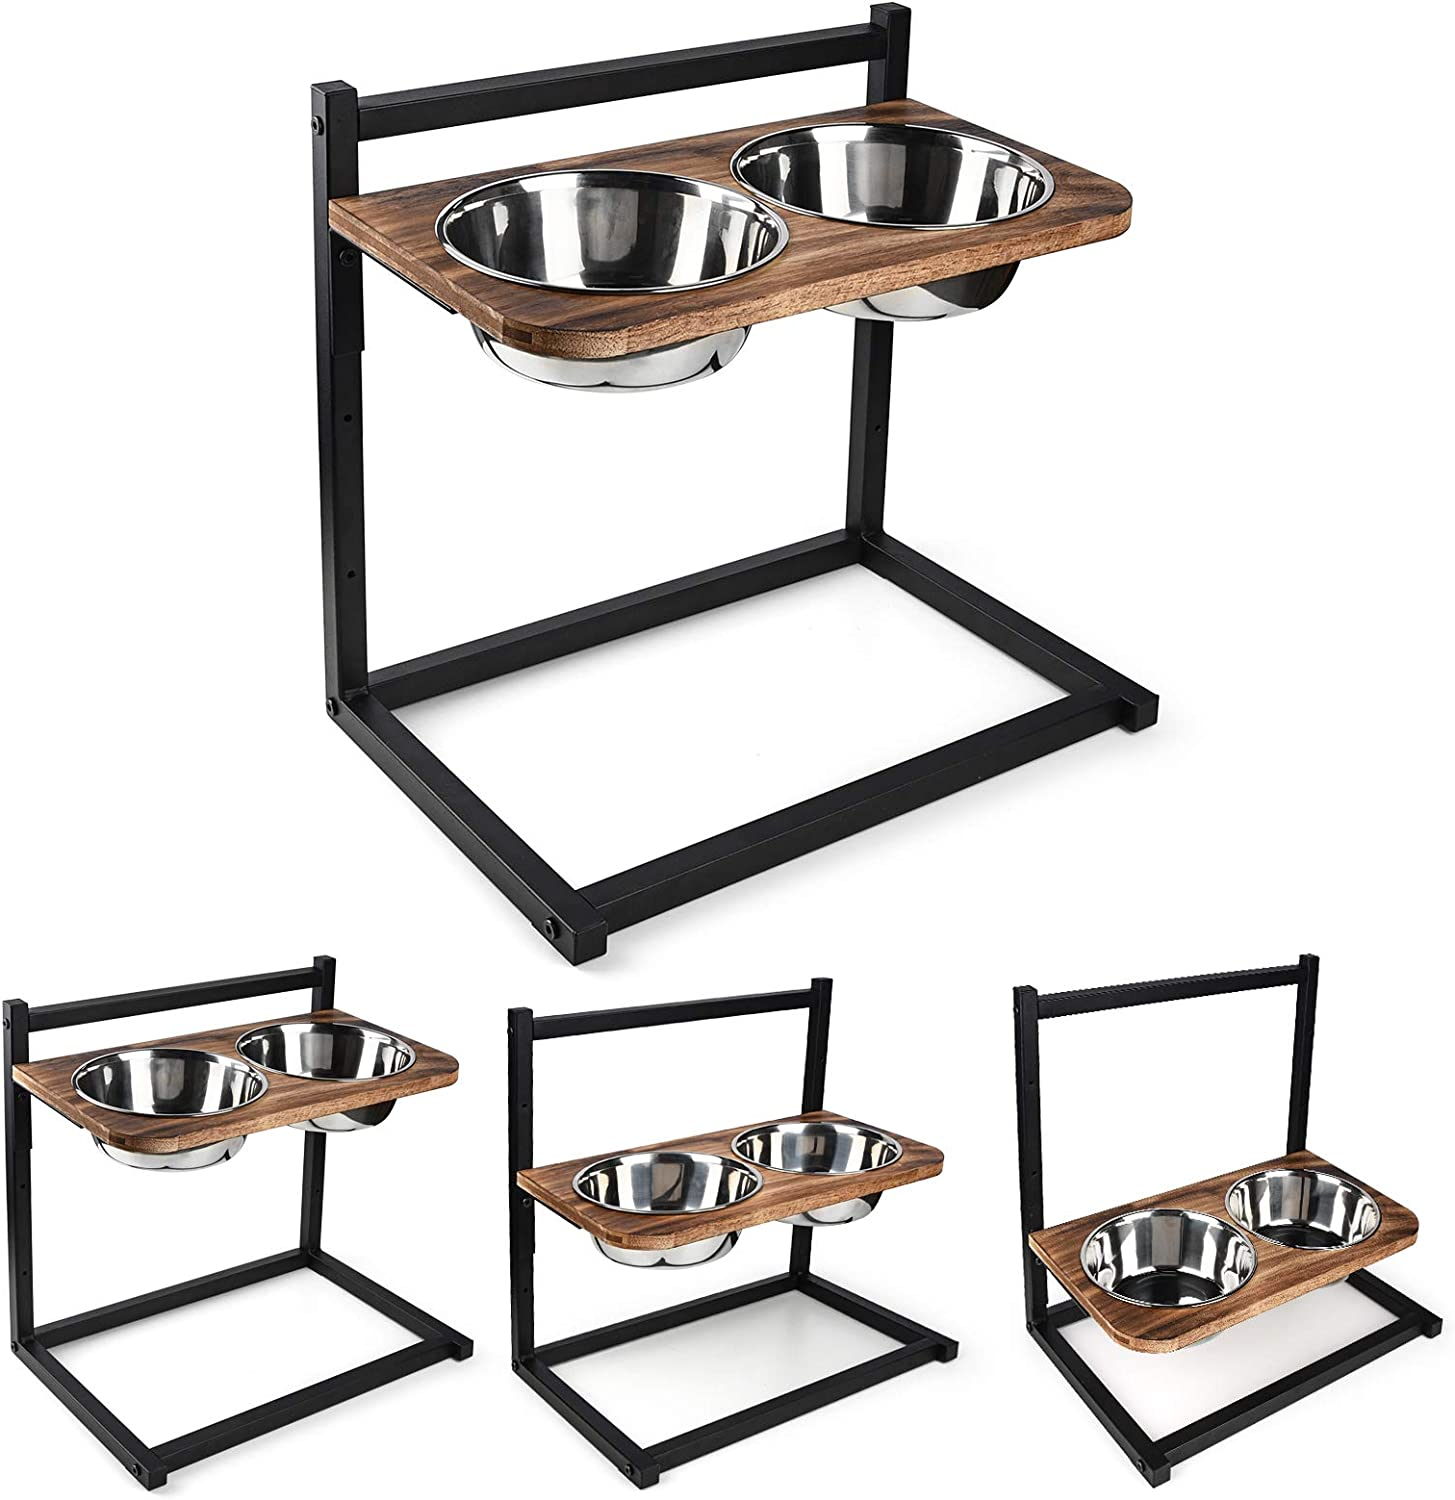 Emfogo Dog Cat Bowls Raised Dog Bowl Stand Feeder Adjustable Elevated 3 Heights5in 9in 13in with Stainless Steel Food and Water Bowls for Small to Large Dogs and Cats 16.5x16 inch